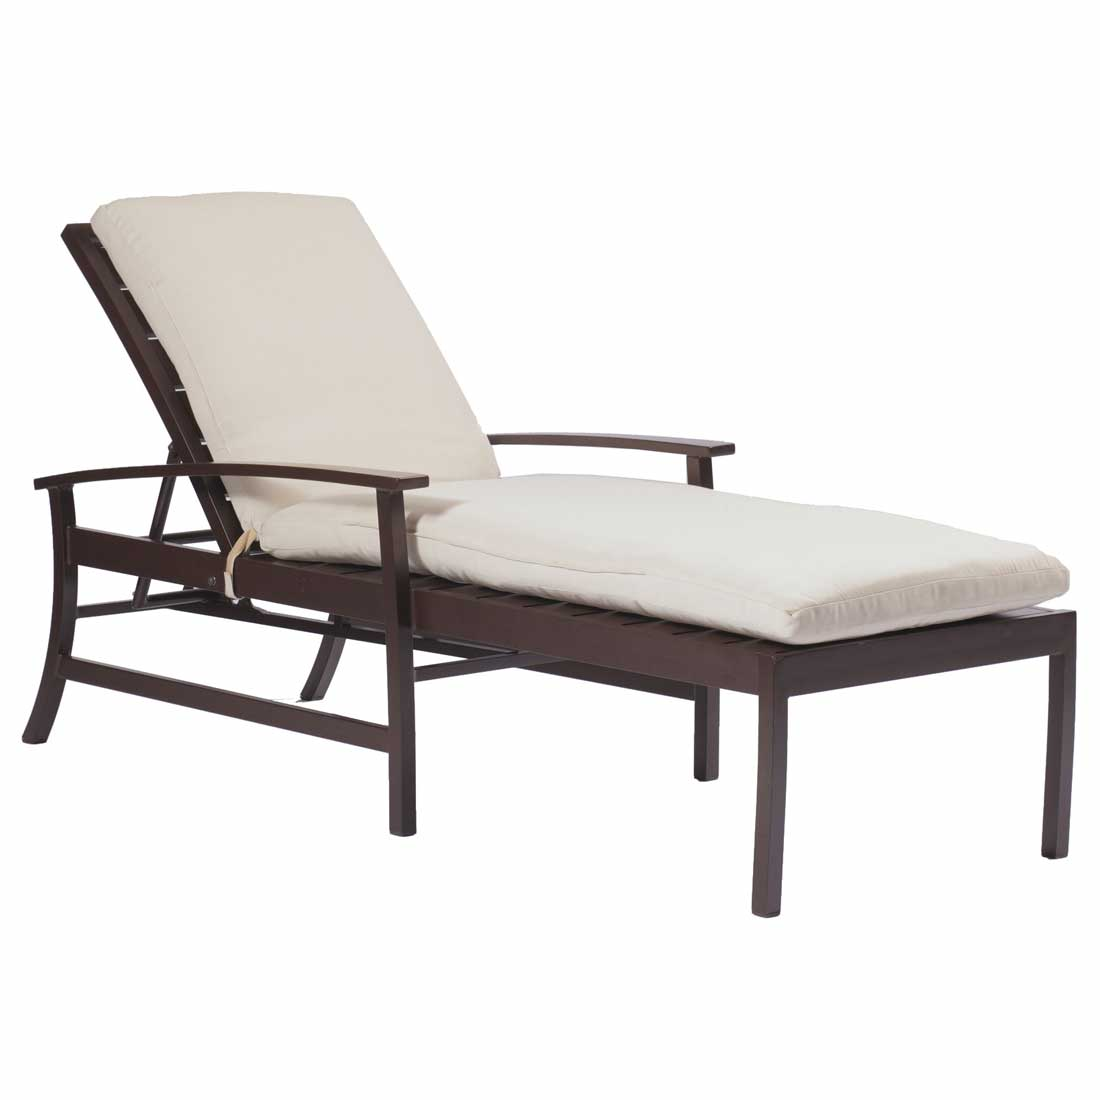 Charleston patio chaise lounge chairs for Daybed bench chaise